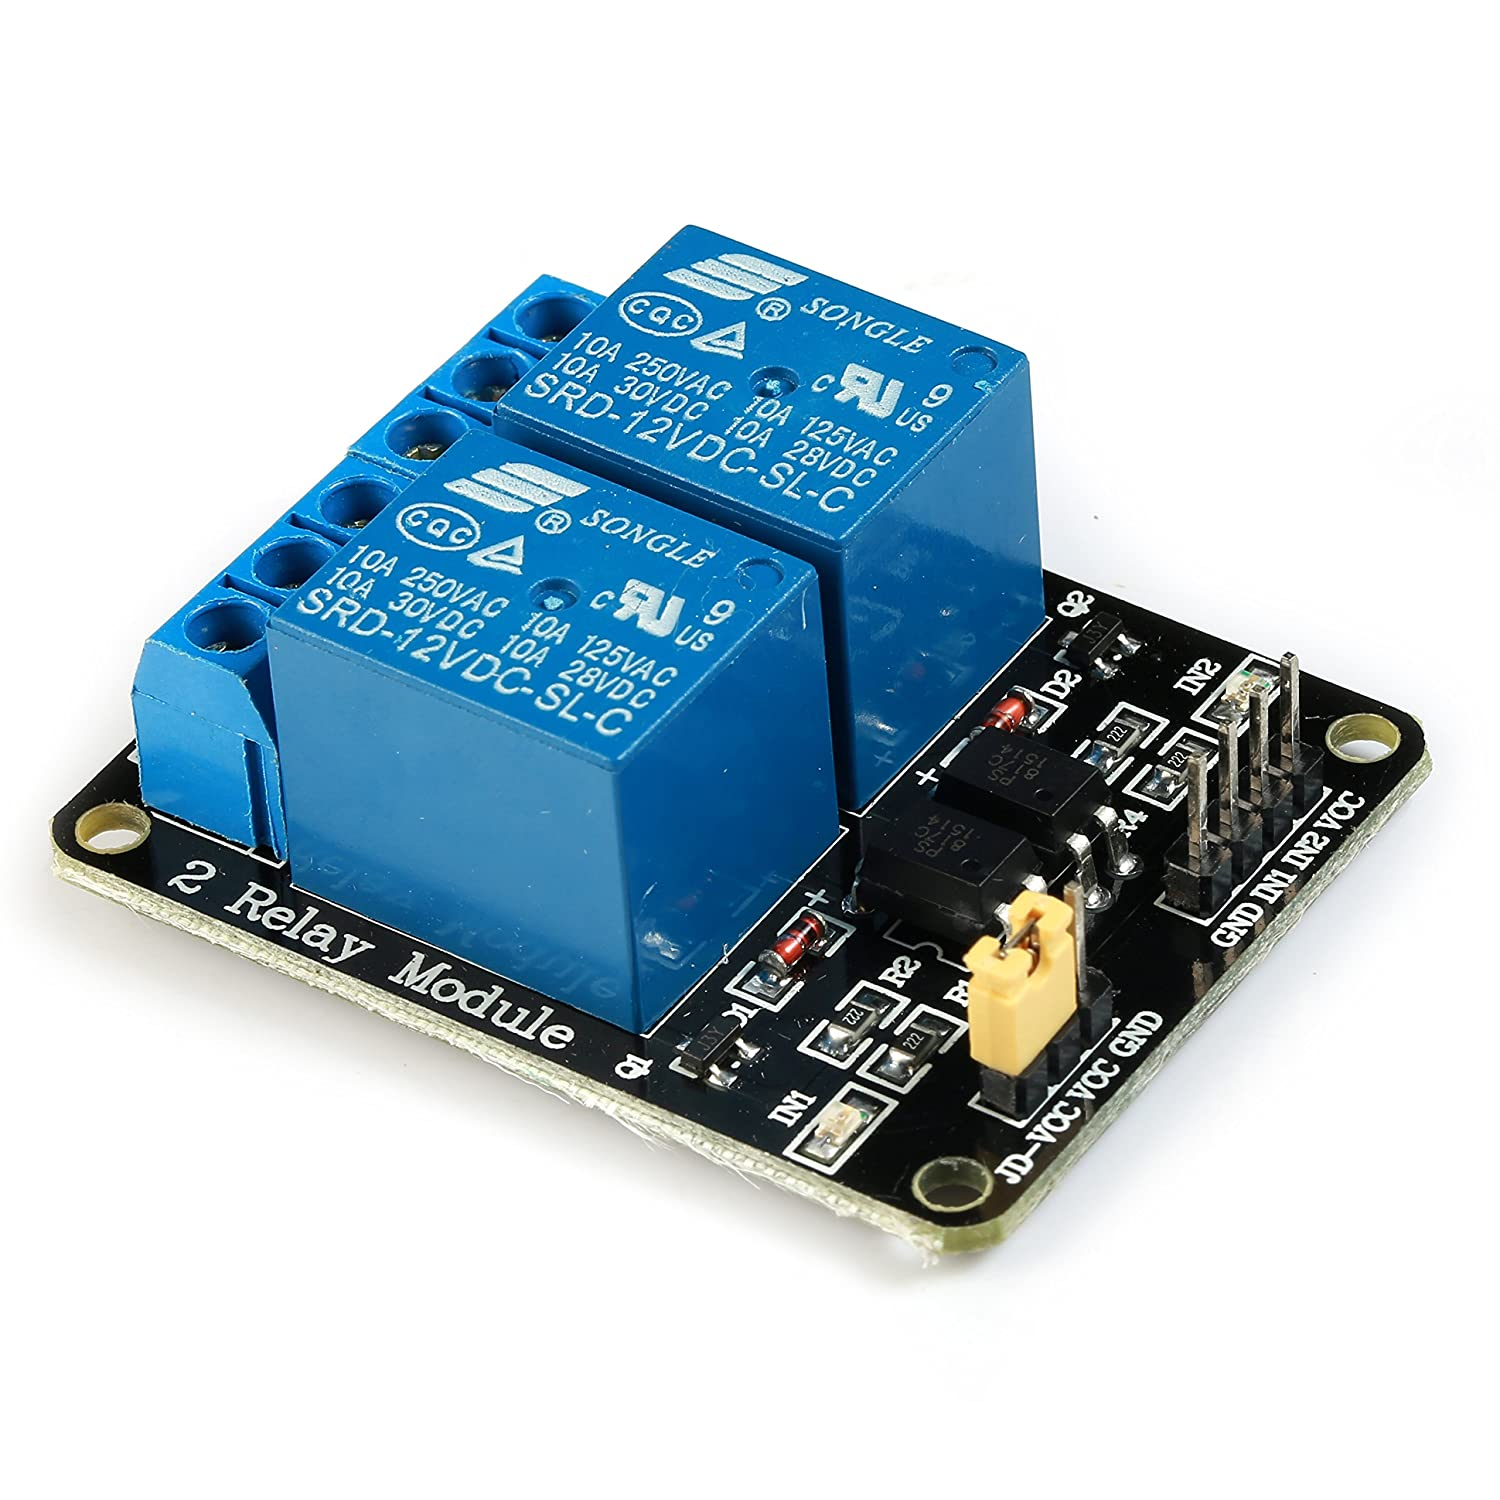 GEREE 12V 2-Channel Relay Module For Arduino ARM PIC AVR DSP SRD-12VDC-SL-C Relay Interface Board with Optocoupler